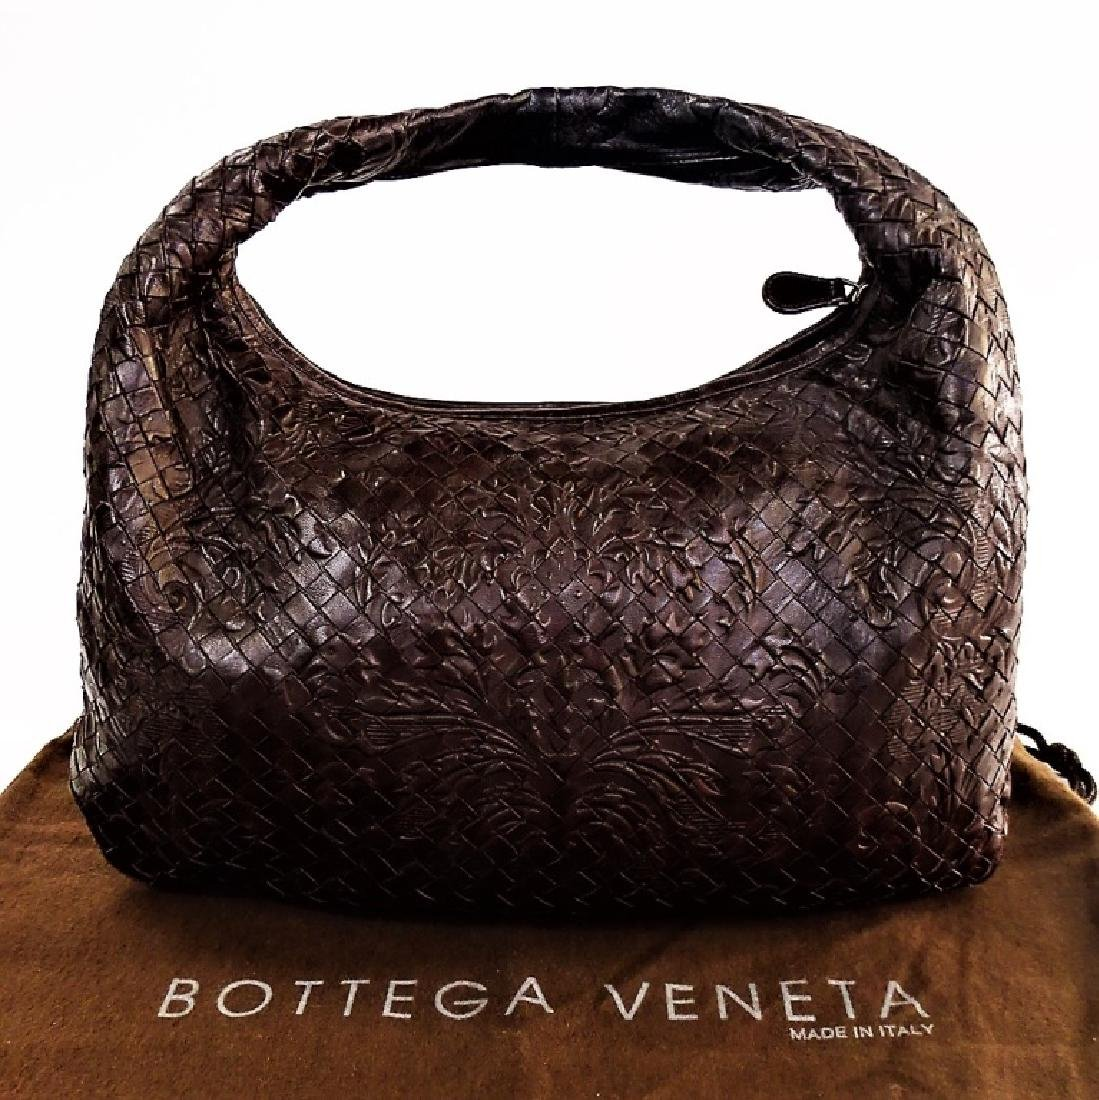 BOTTEGA VENETA EMBOSSED BROWN LEATHER TOTE BAG